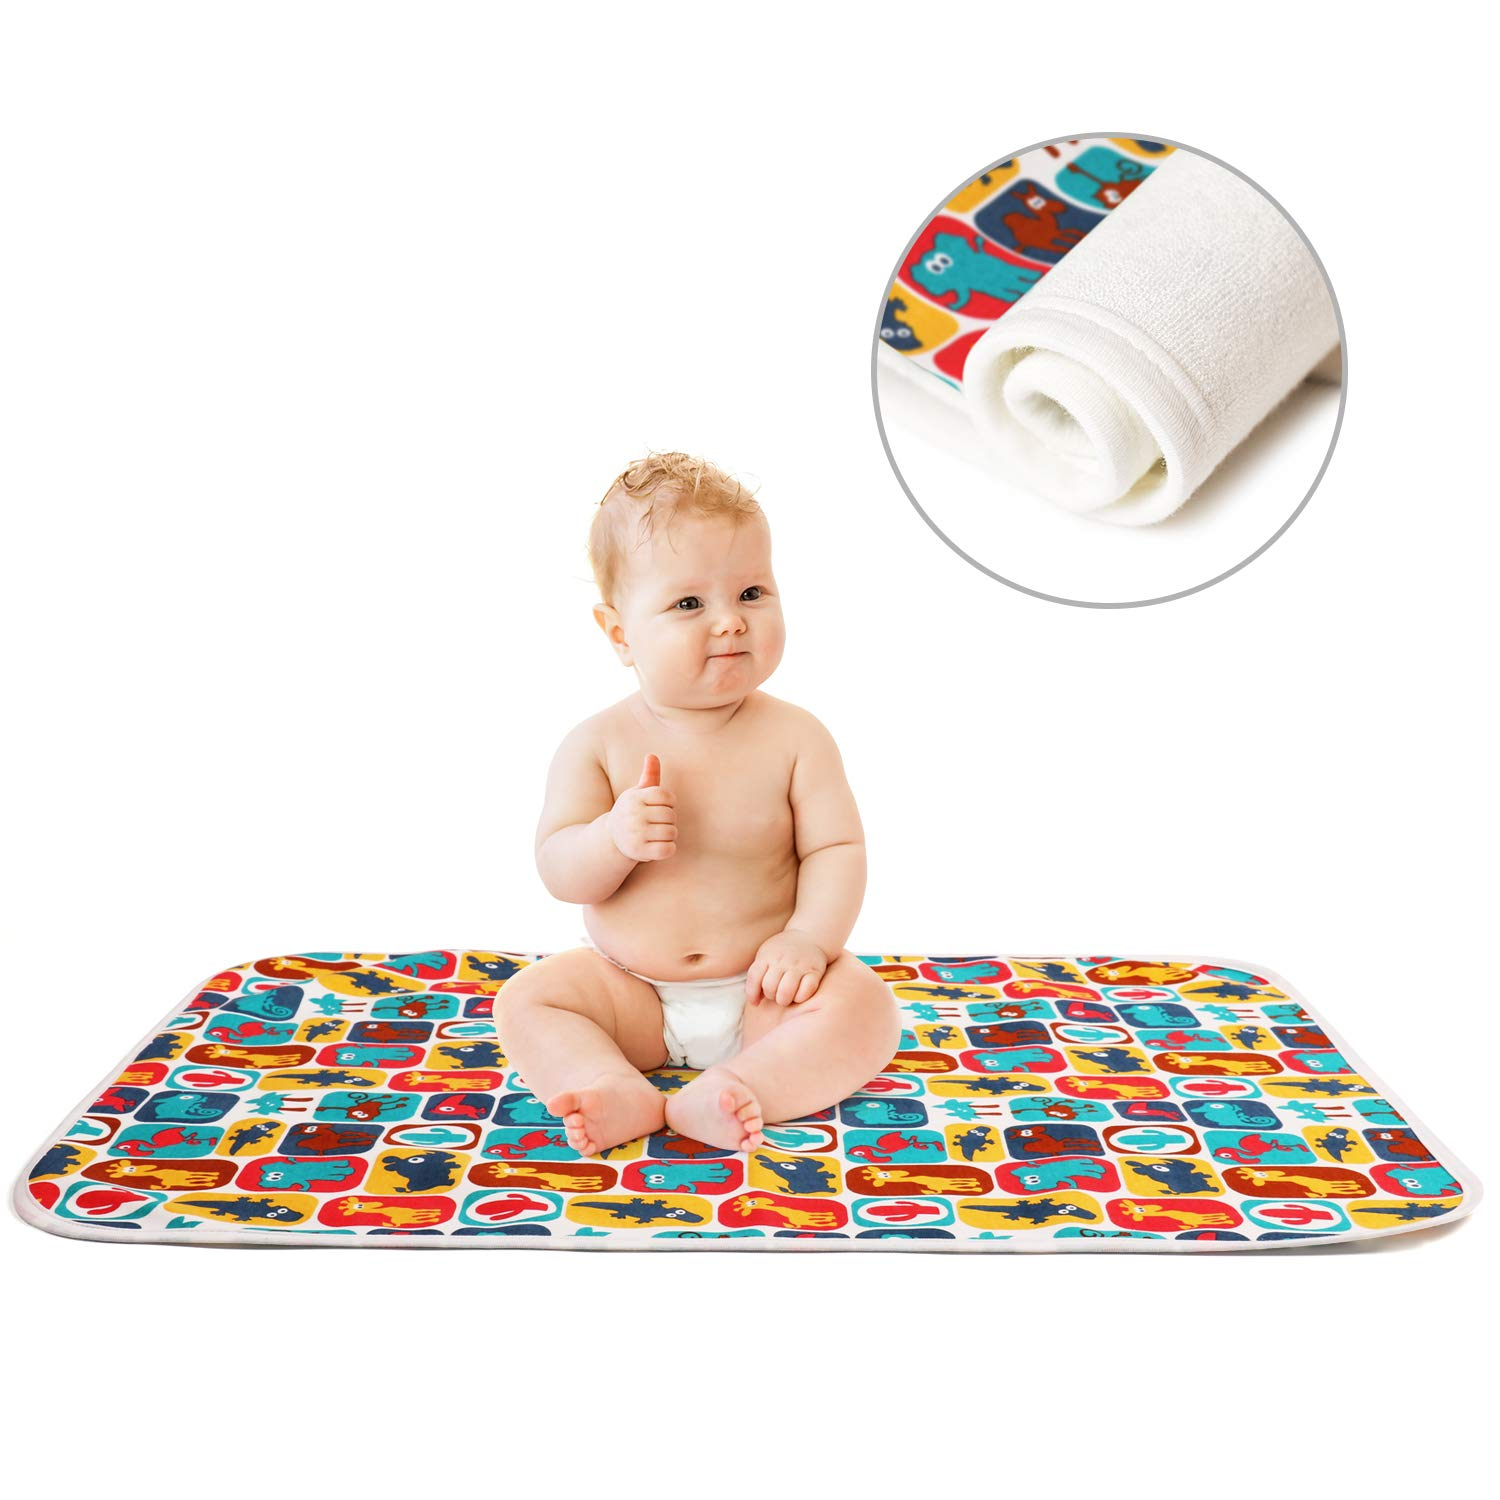 Printed Changing Baby Diaper Pad, Waterproof Pad Baby, Mifiatin Soft Urine Pads Absorbent Blanket Sheet Bed Pads Washable Mattress Change Mat Incontinence Pads for Infant and Adults - Zoo(70x50cm)